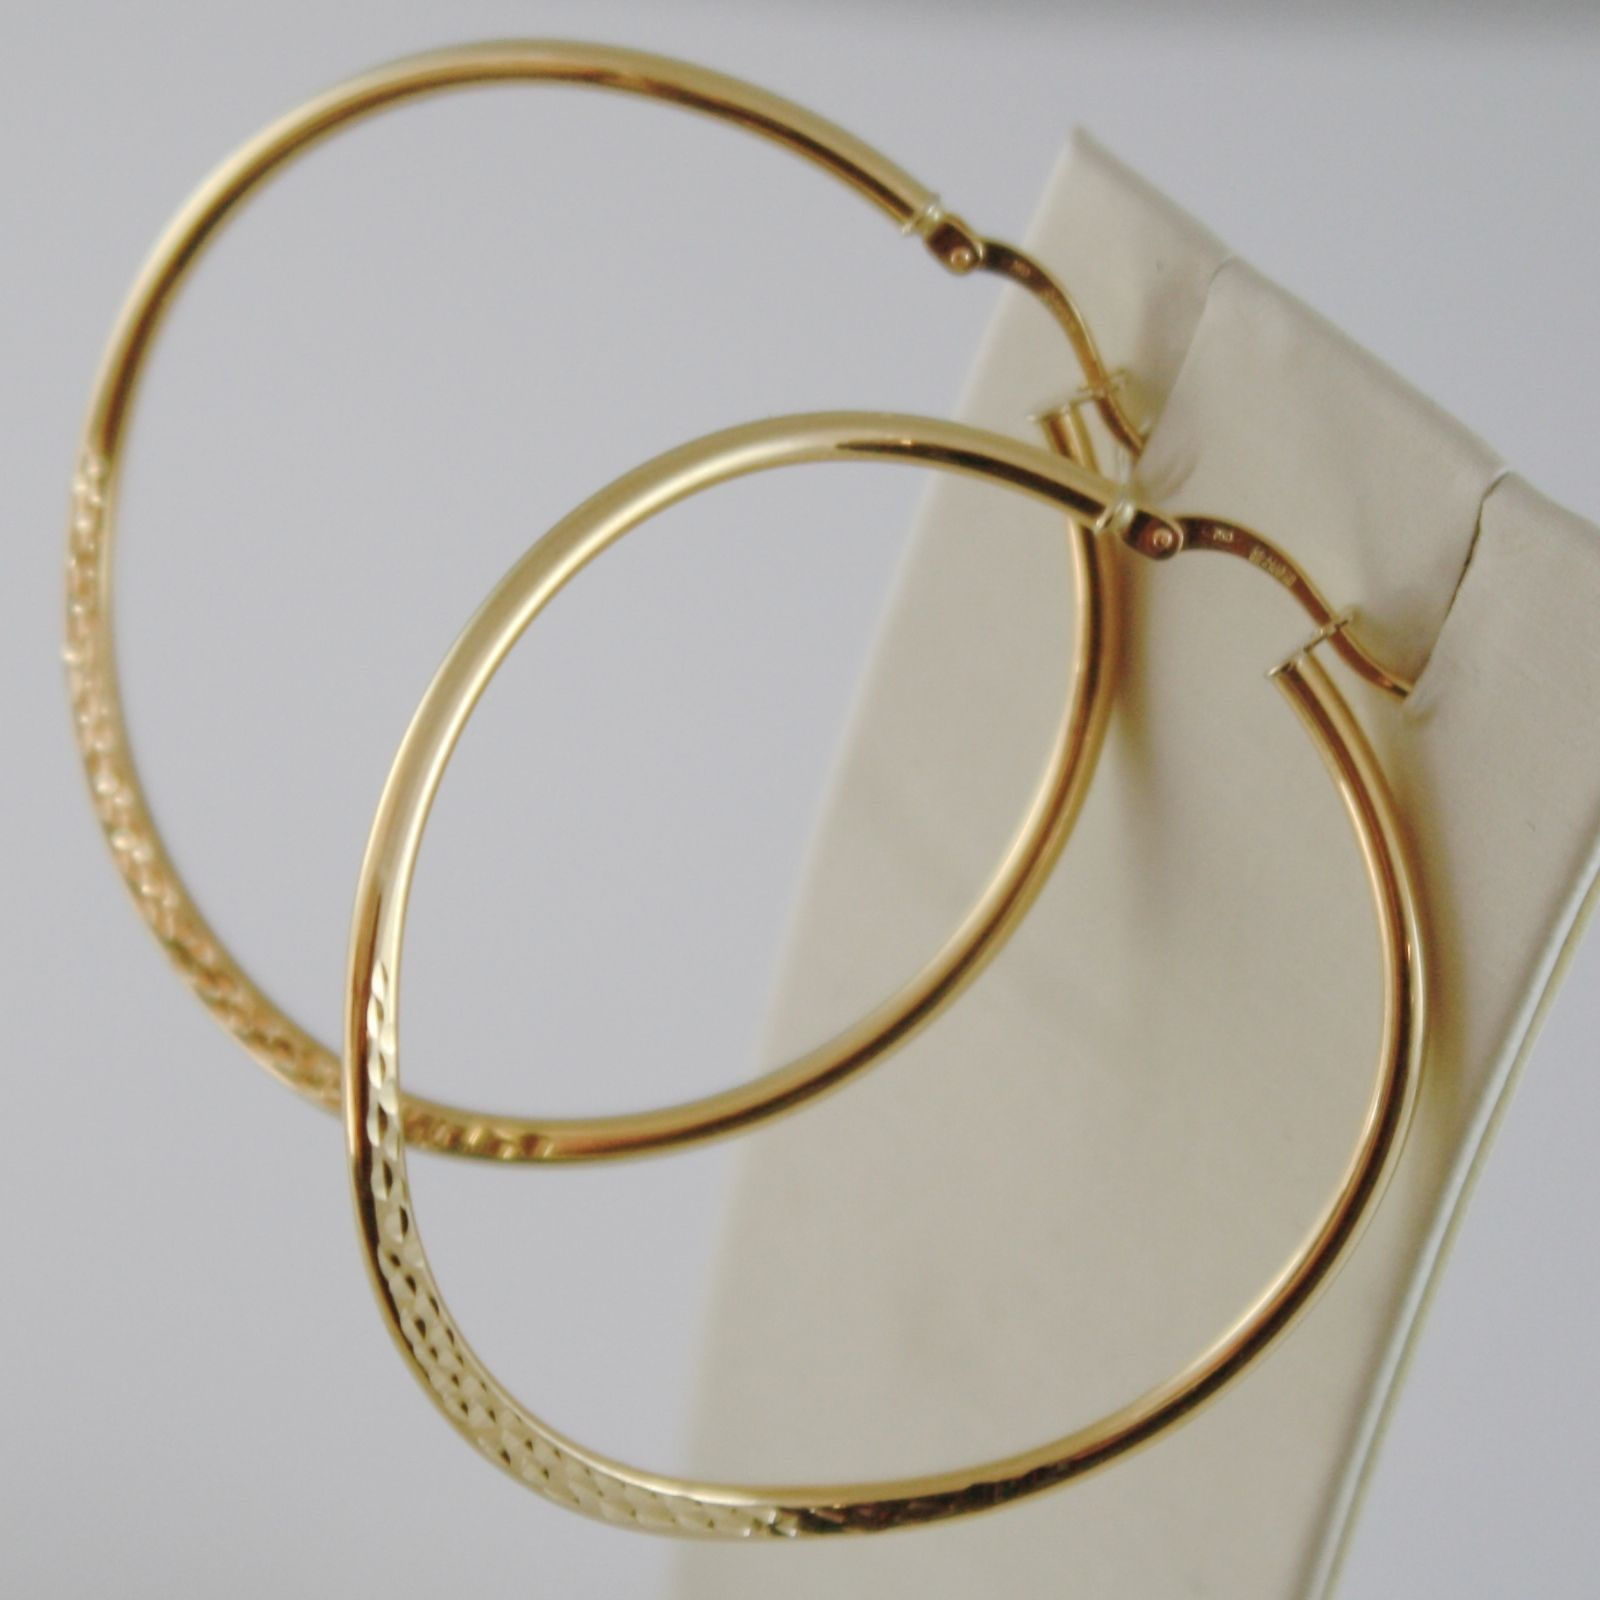 SOLID 18K YELLOW GOLD CIRCLE, HOOP ONDULATE WORKED BIG EARRINGS, MADE IN ITALY